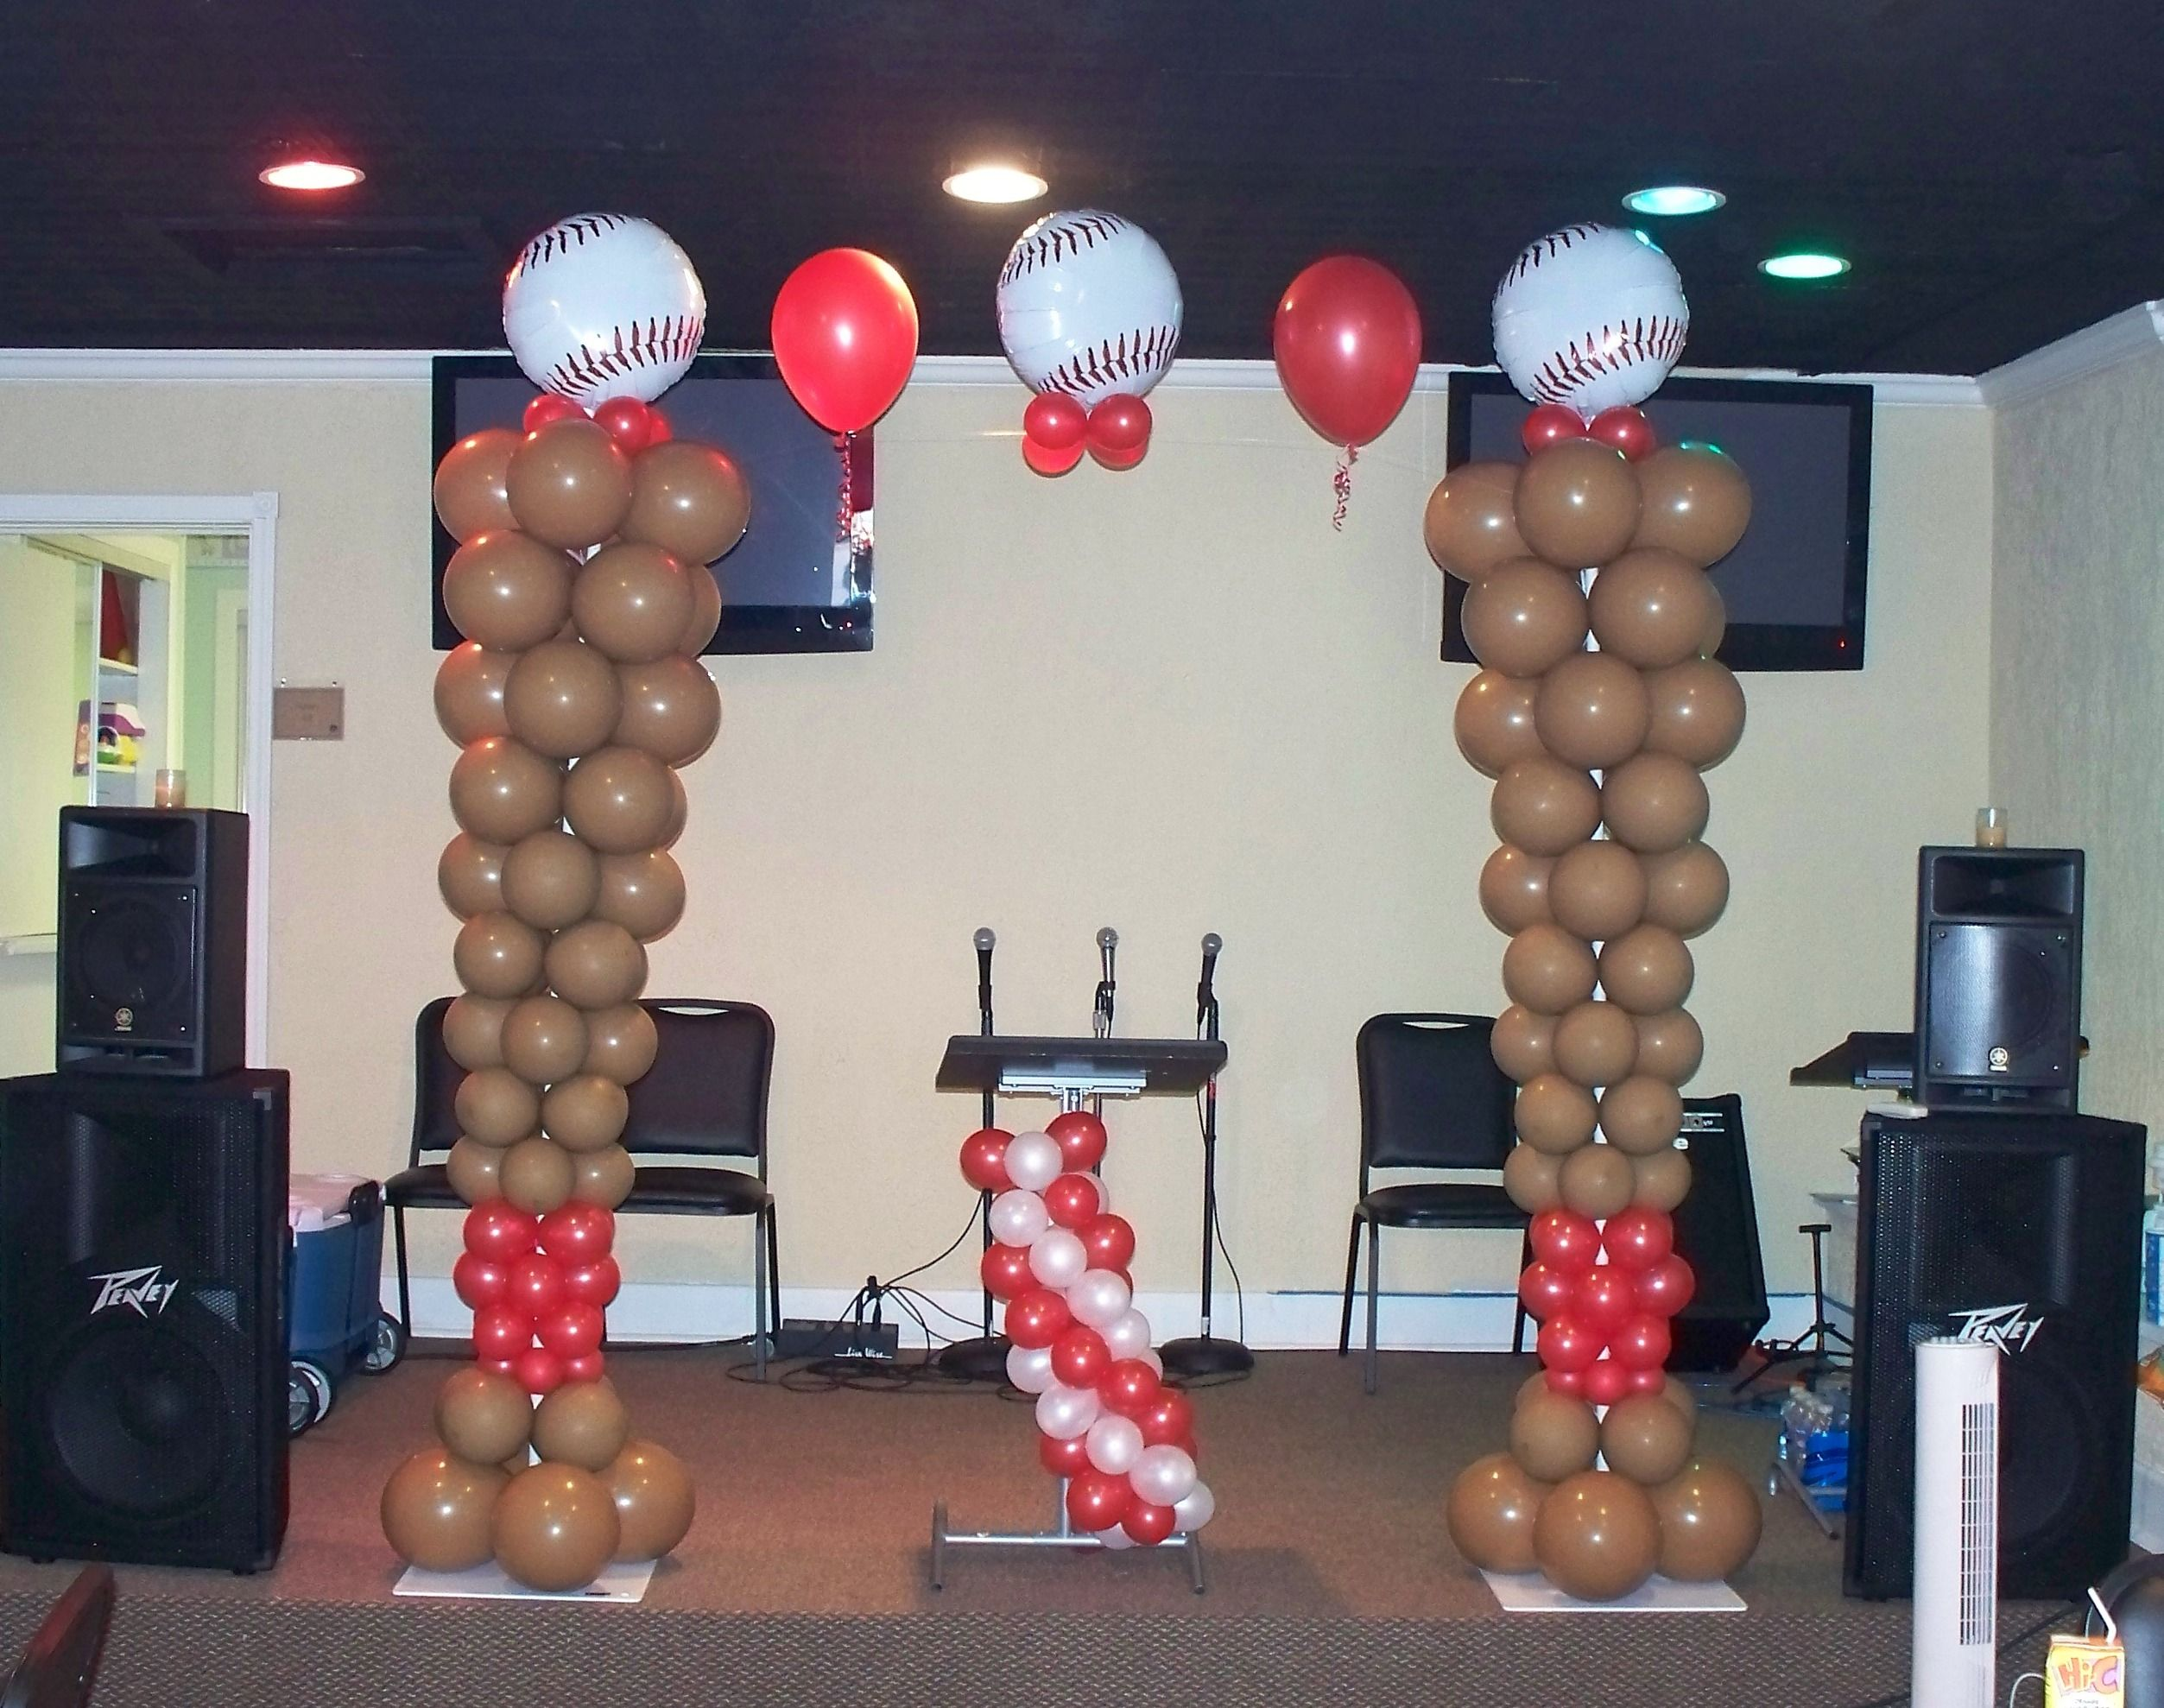 Sports Themed Balloon Decor 1000 Images About Sports Balloon On Pinterest Football Soccer